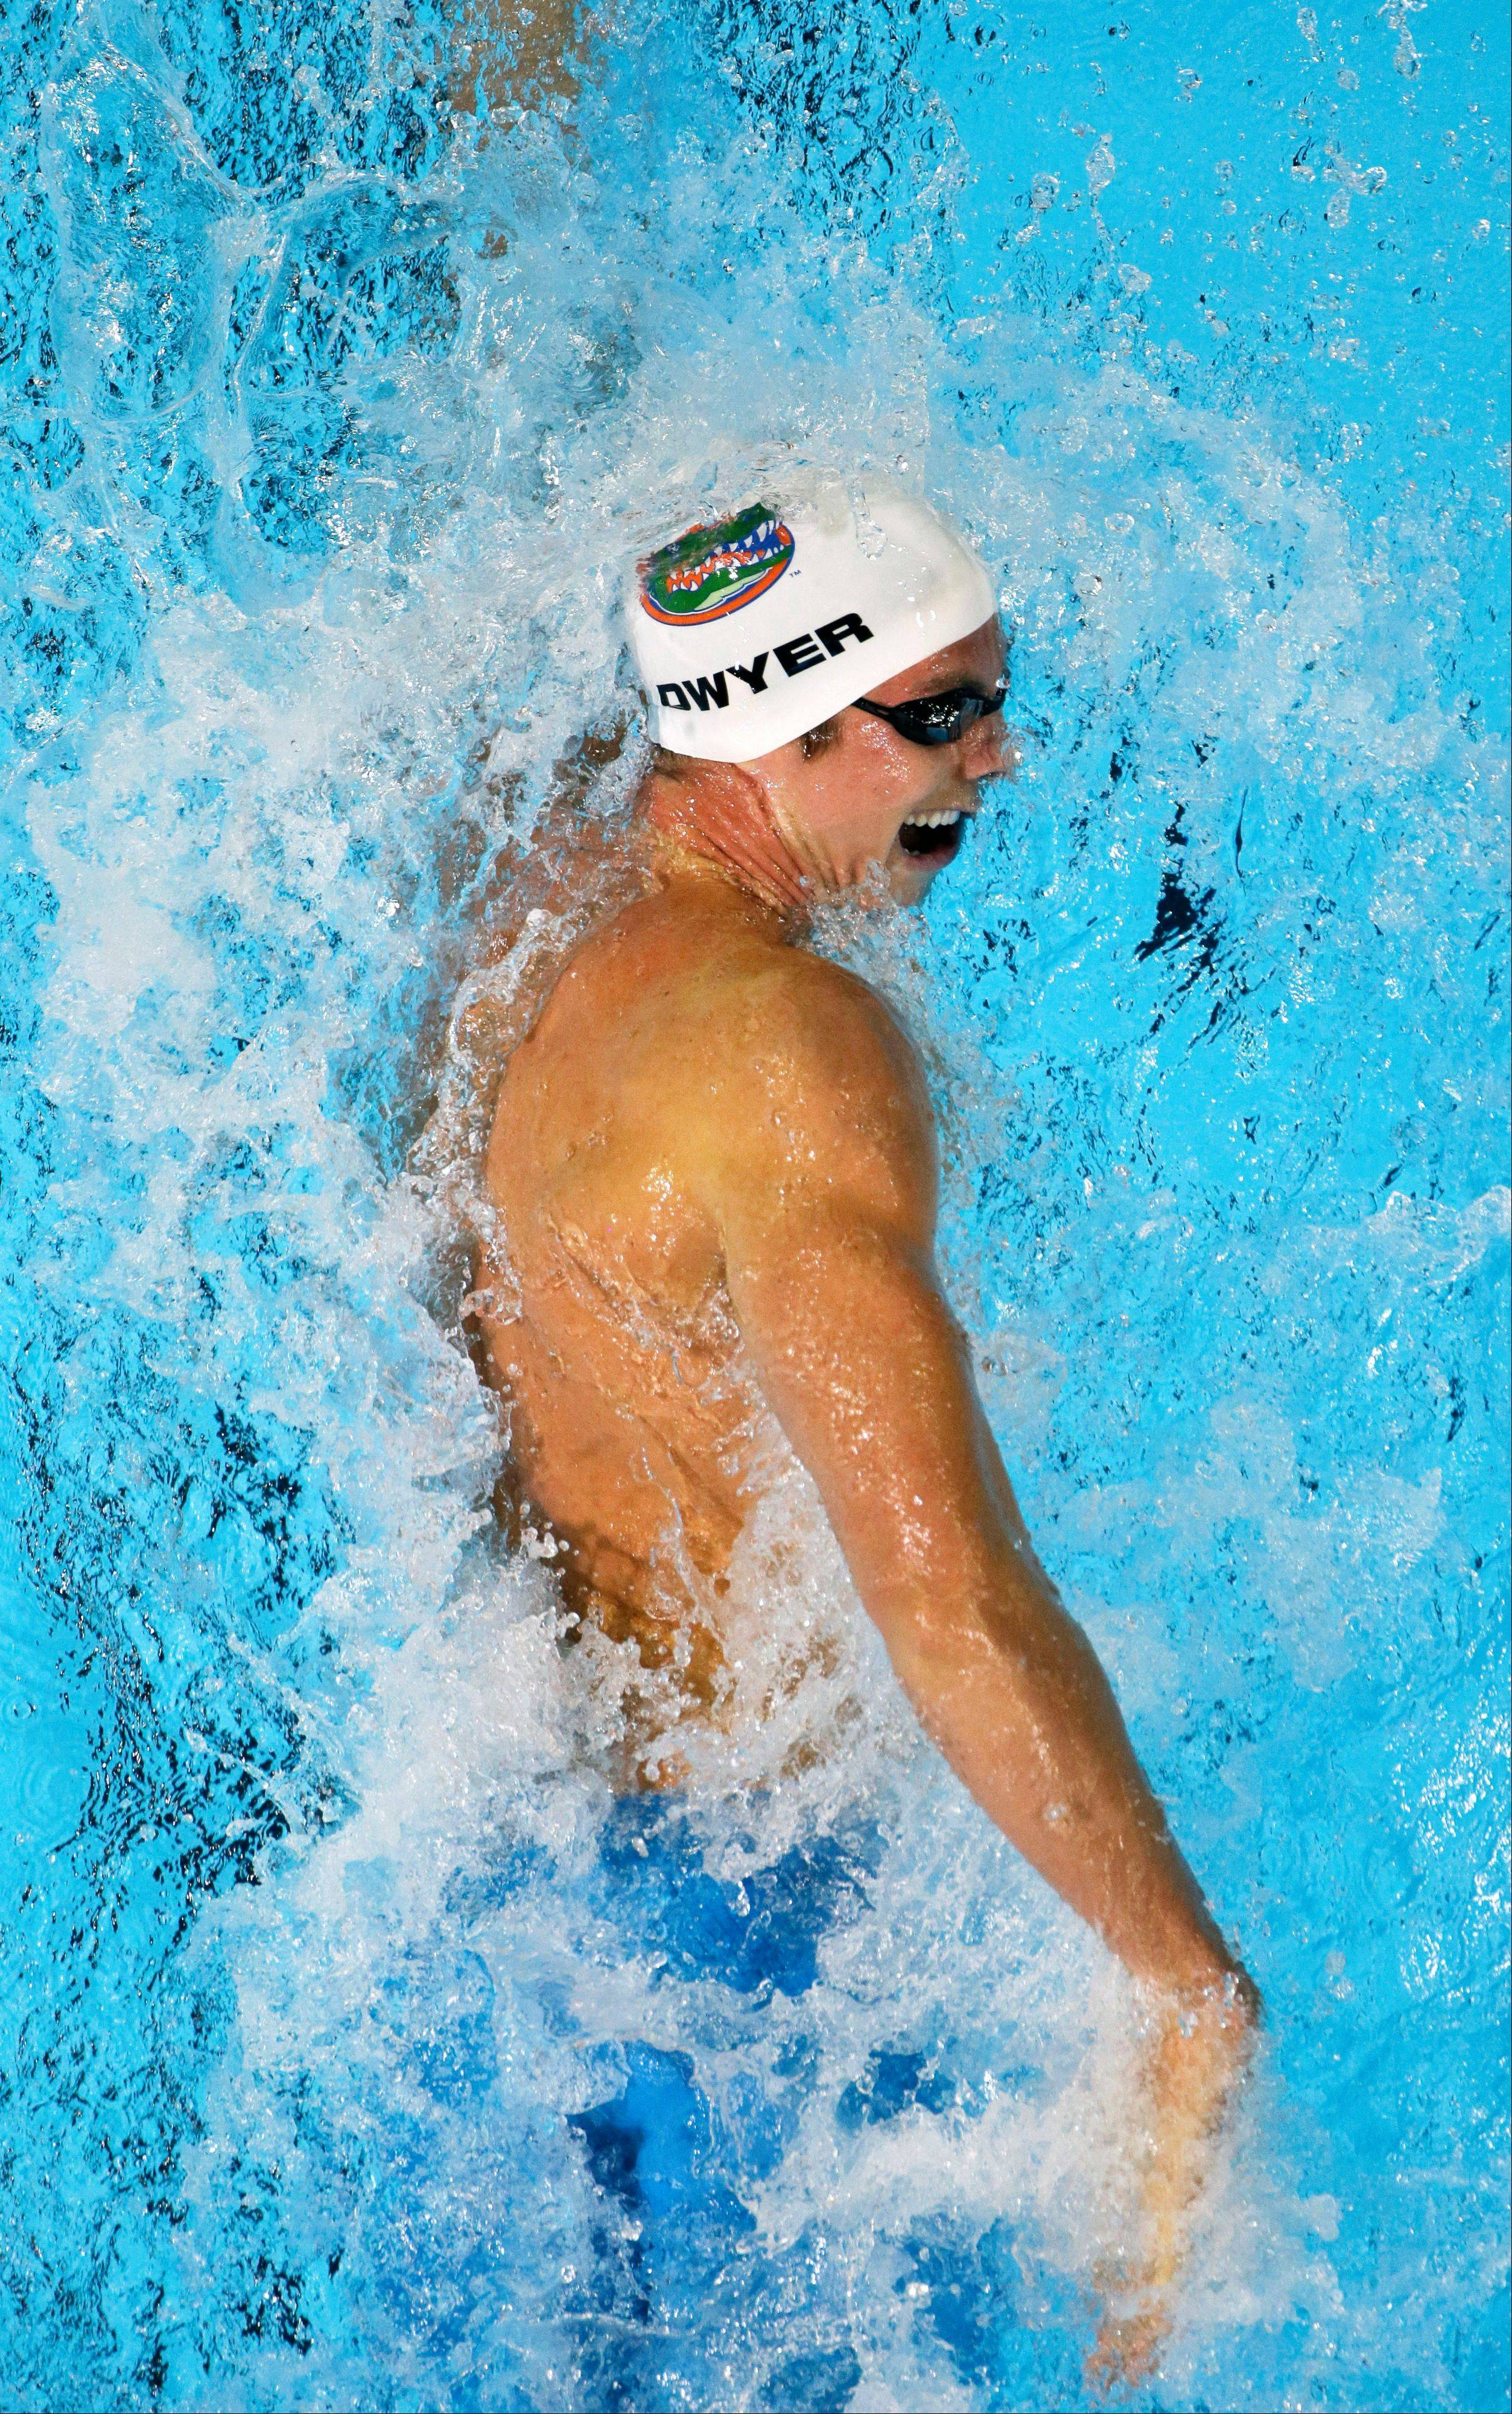 Conor Dwyer swims in the men's 200-meter freestyle preliminaries at the U.S. Olympic swimming trials Tuesday. In high school, Dwyer competed at Loyola Academy; he advanced to the championship heat of the event and already made the U.S. Olympic team in the 400 freestyle.